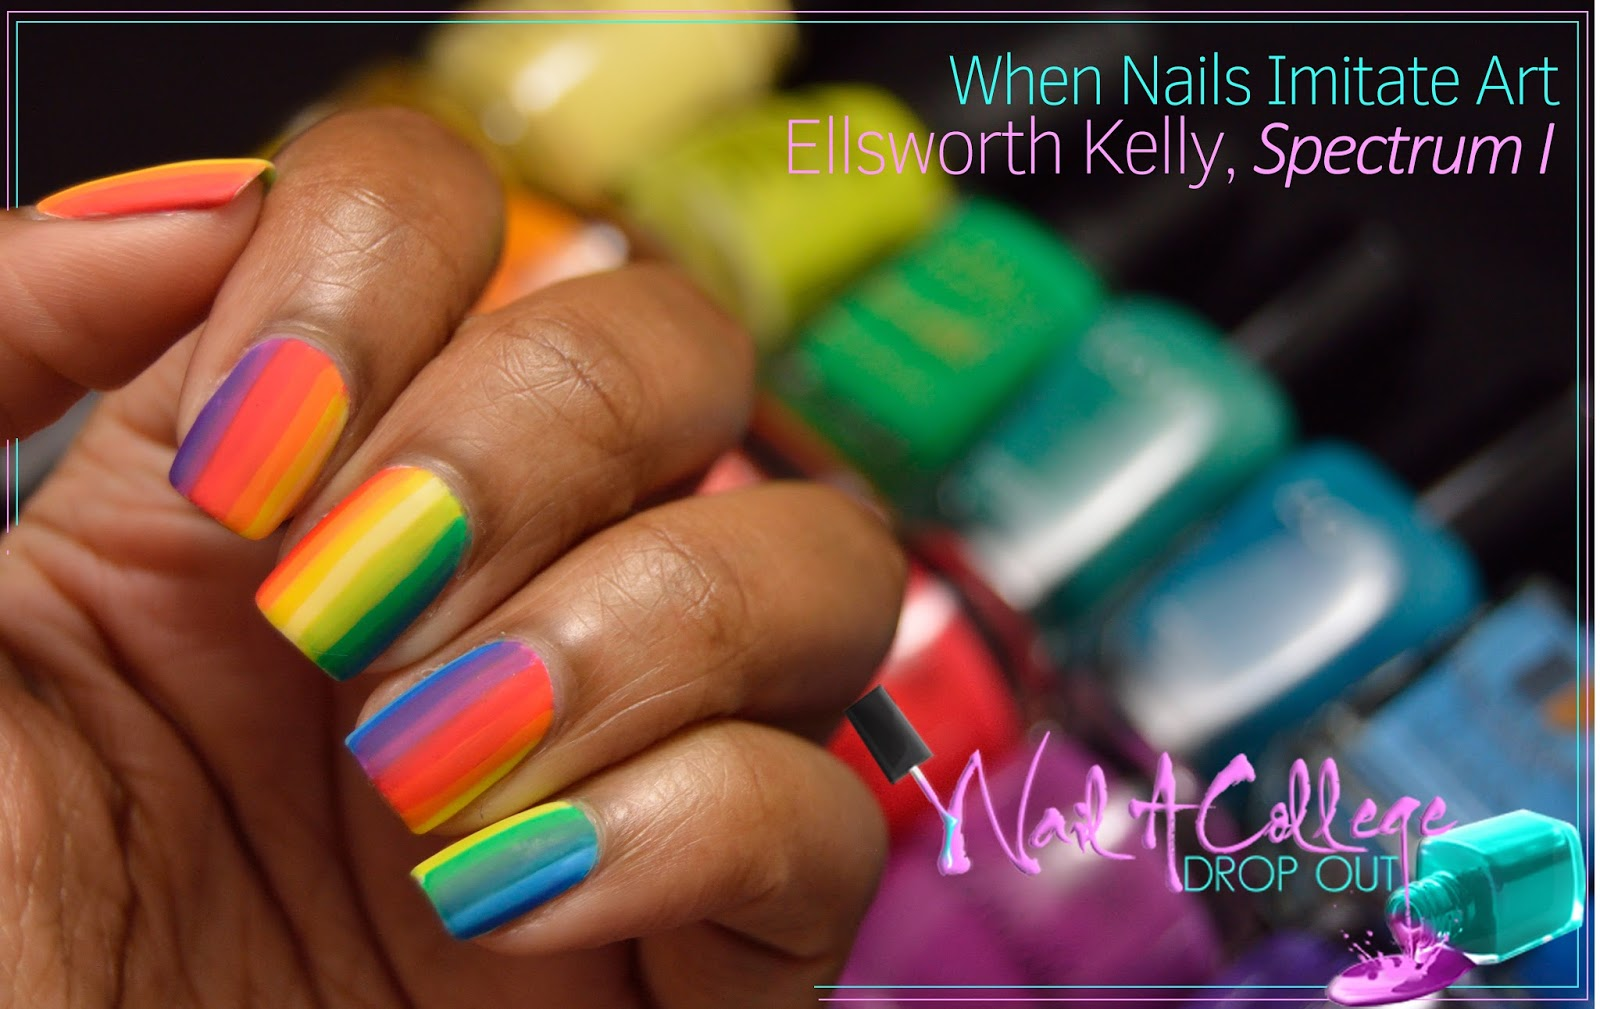 Nail A College Drop Out: When Nails Imitate Art: Ellsworth Kelly